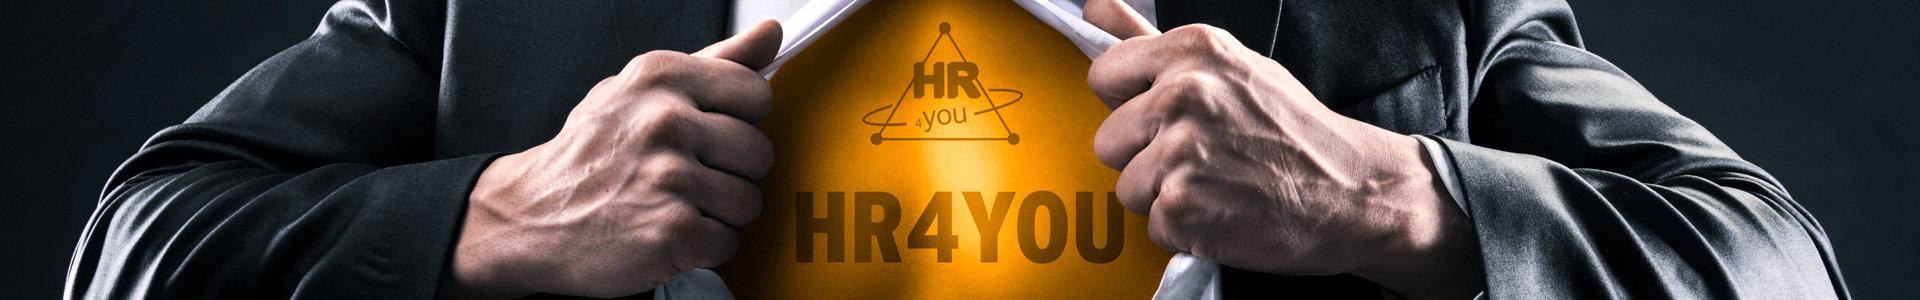 hr4you-software für personalberater